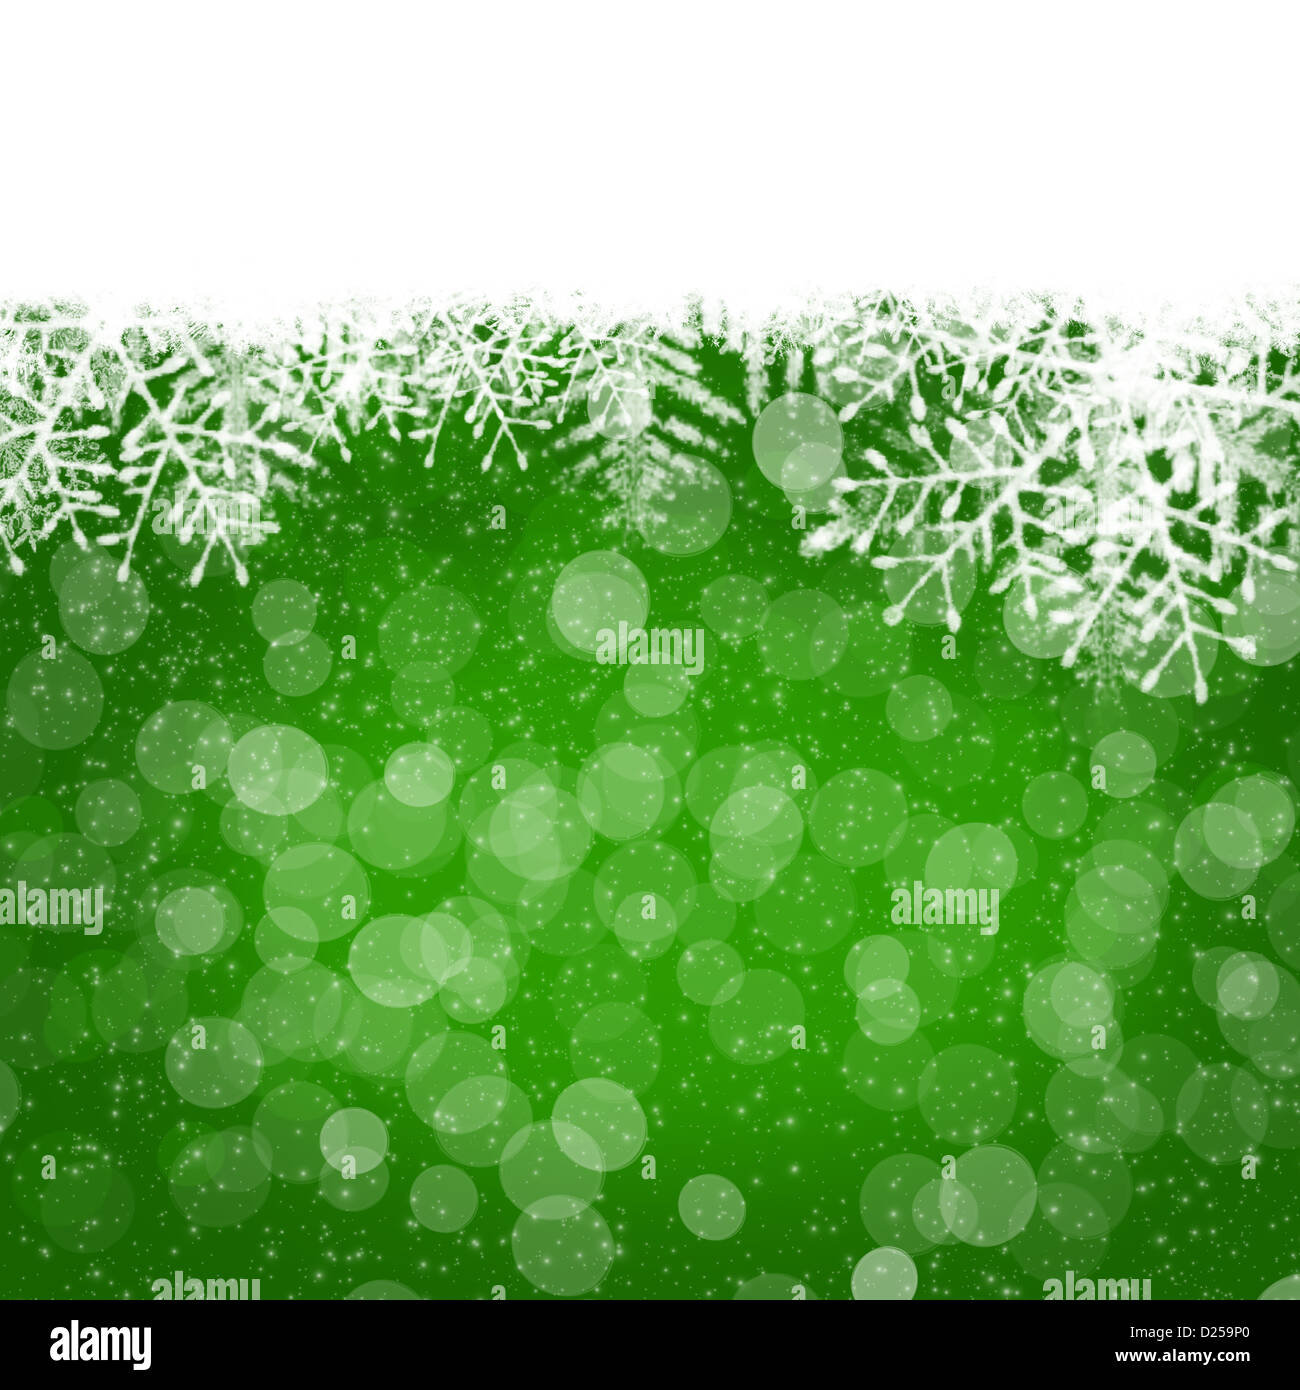 Christmas abstract blurred background - Stock Image